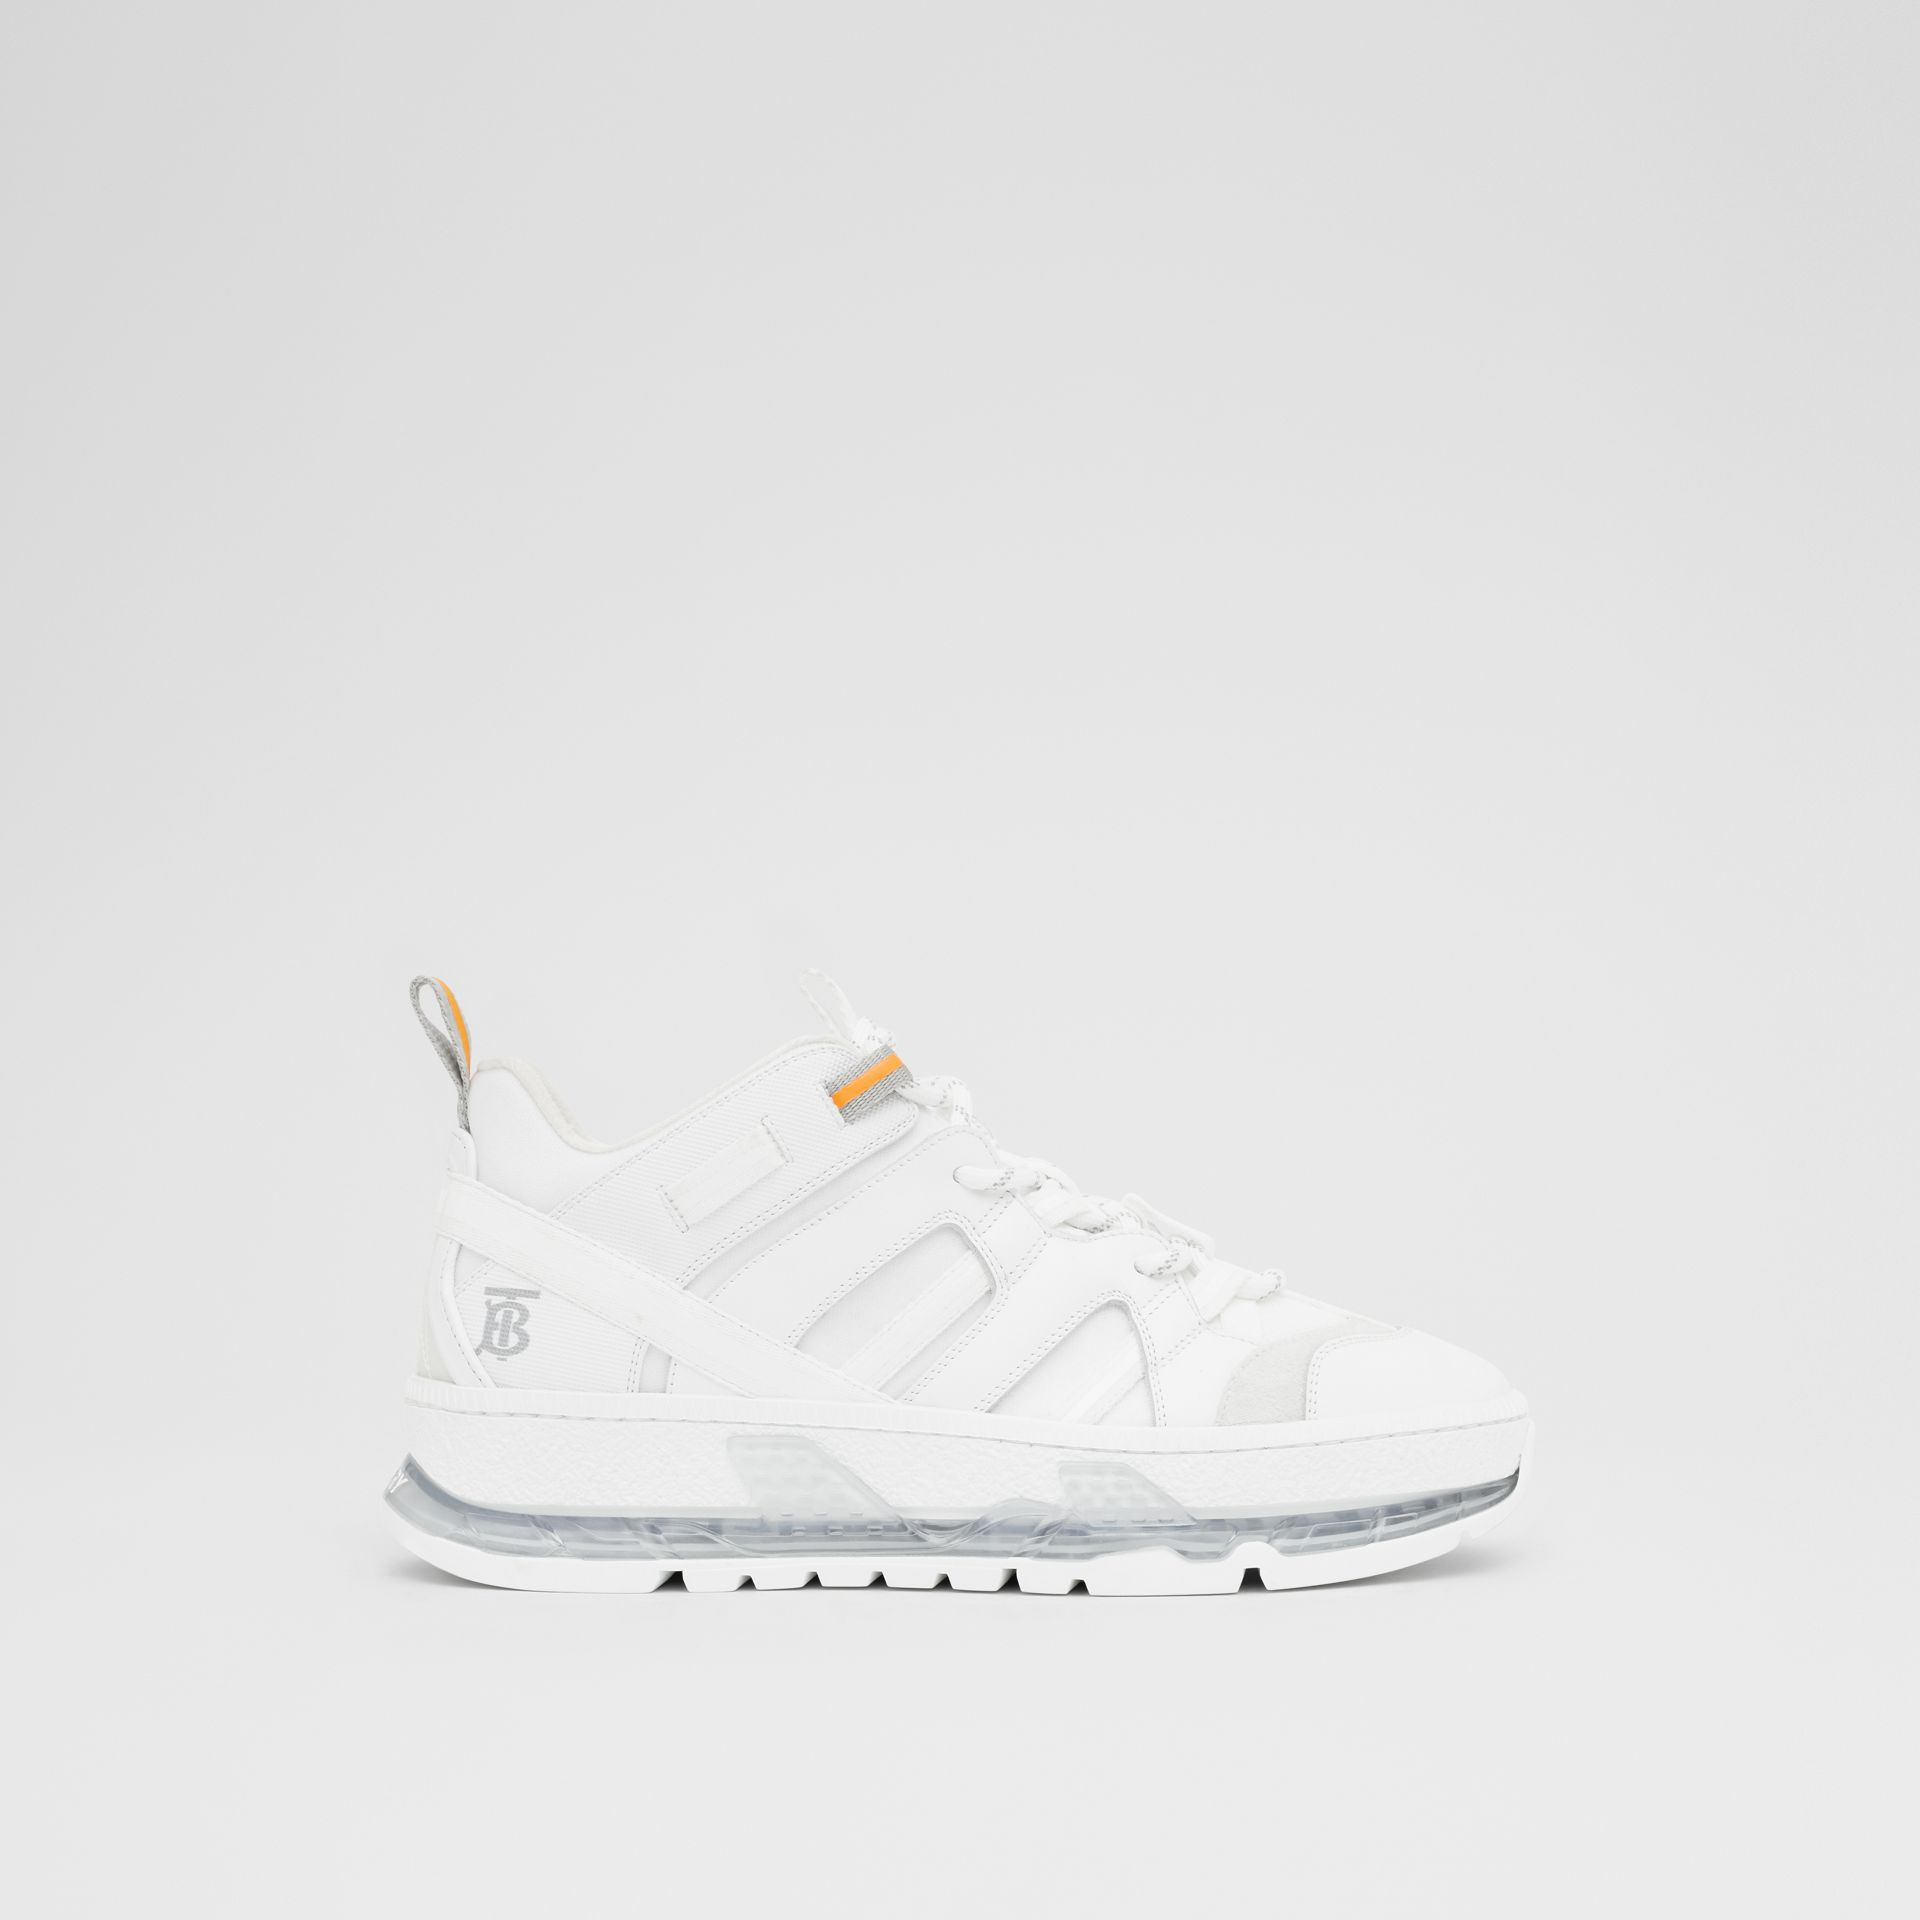 Nylon and Leather Union Sneakers in Optic White - Women | Burberry United Kingdom - gallery image 4